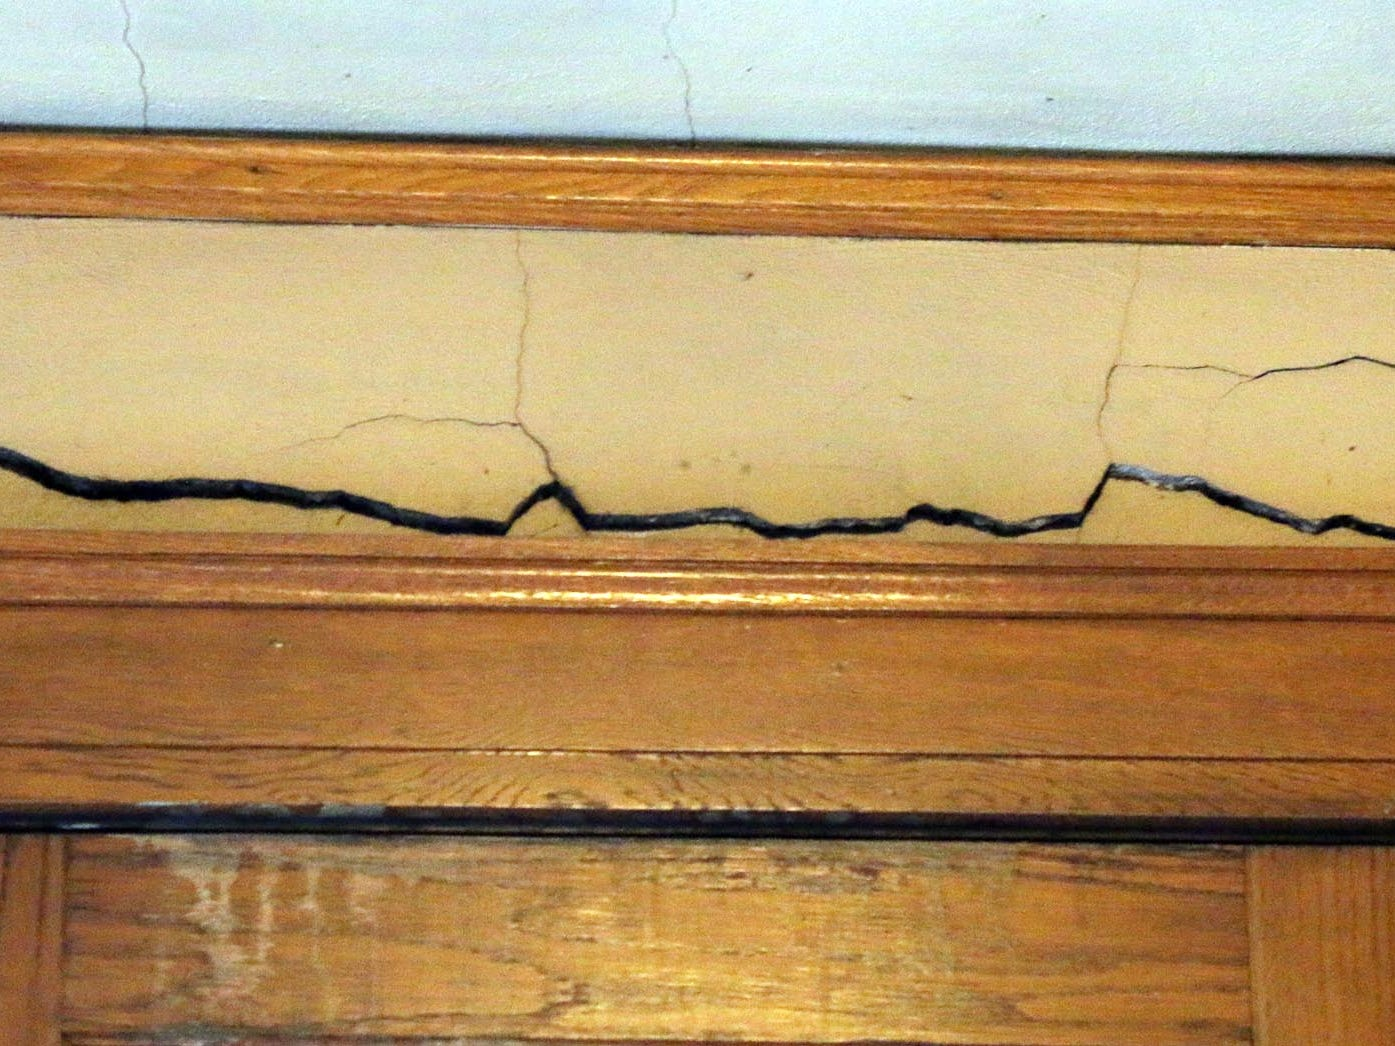 A large crack as seen on the third floor of the City Hall as seen, Thursday October 2, 2014, in Sheboygan, Wis. In 1915, building was to cost $74,584. Another $75,000 was used in finally completing it.  Today the 2018 renovations have a budget of 10.5 million dollars.